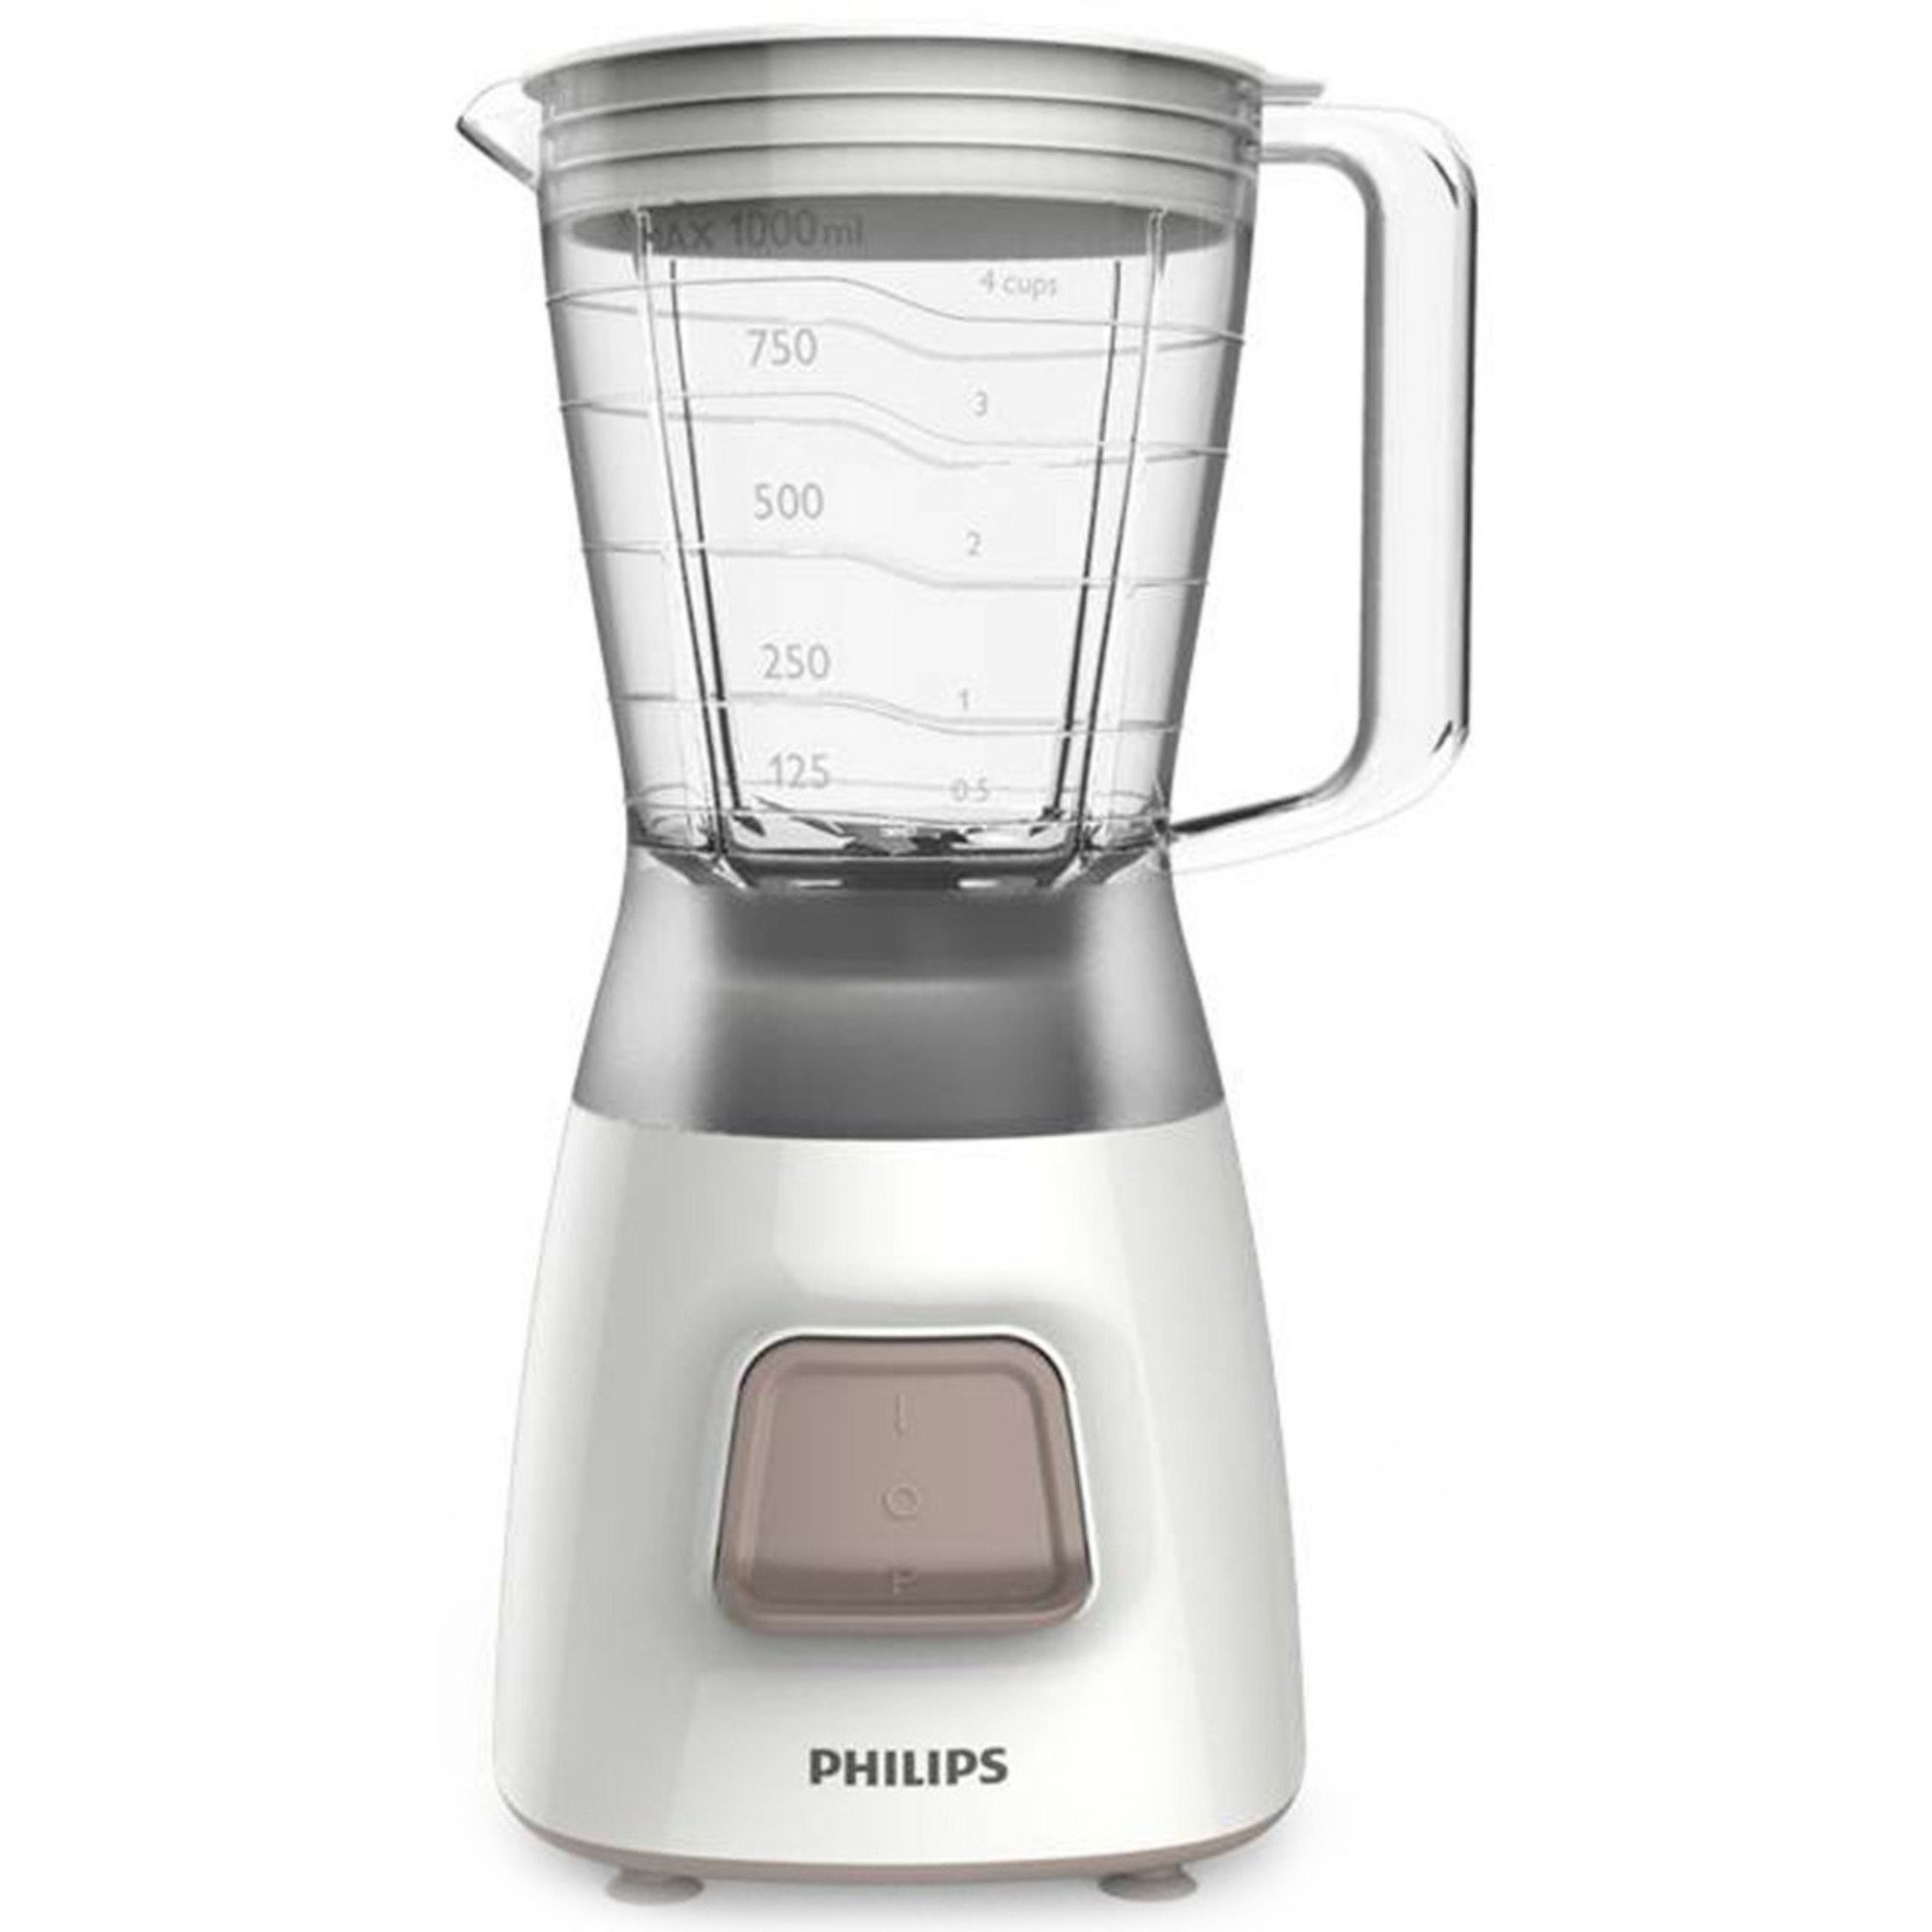 Philips HR2052/00 Blender Vit 350W